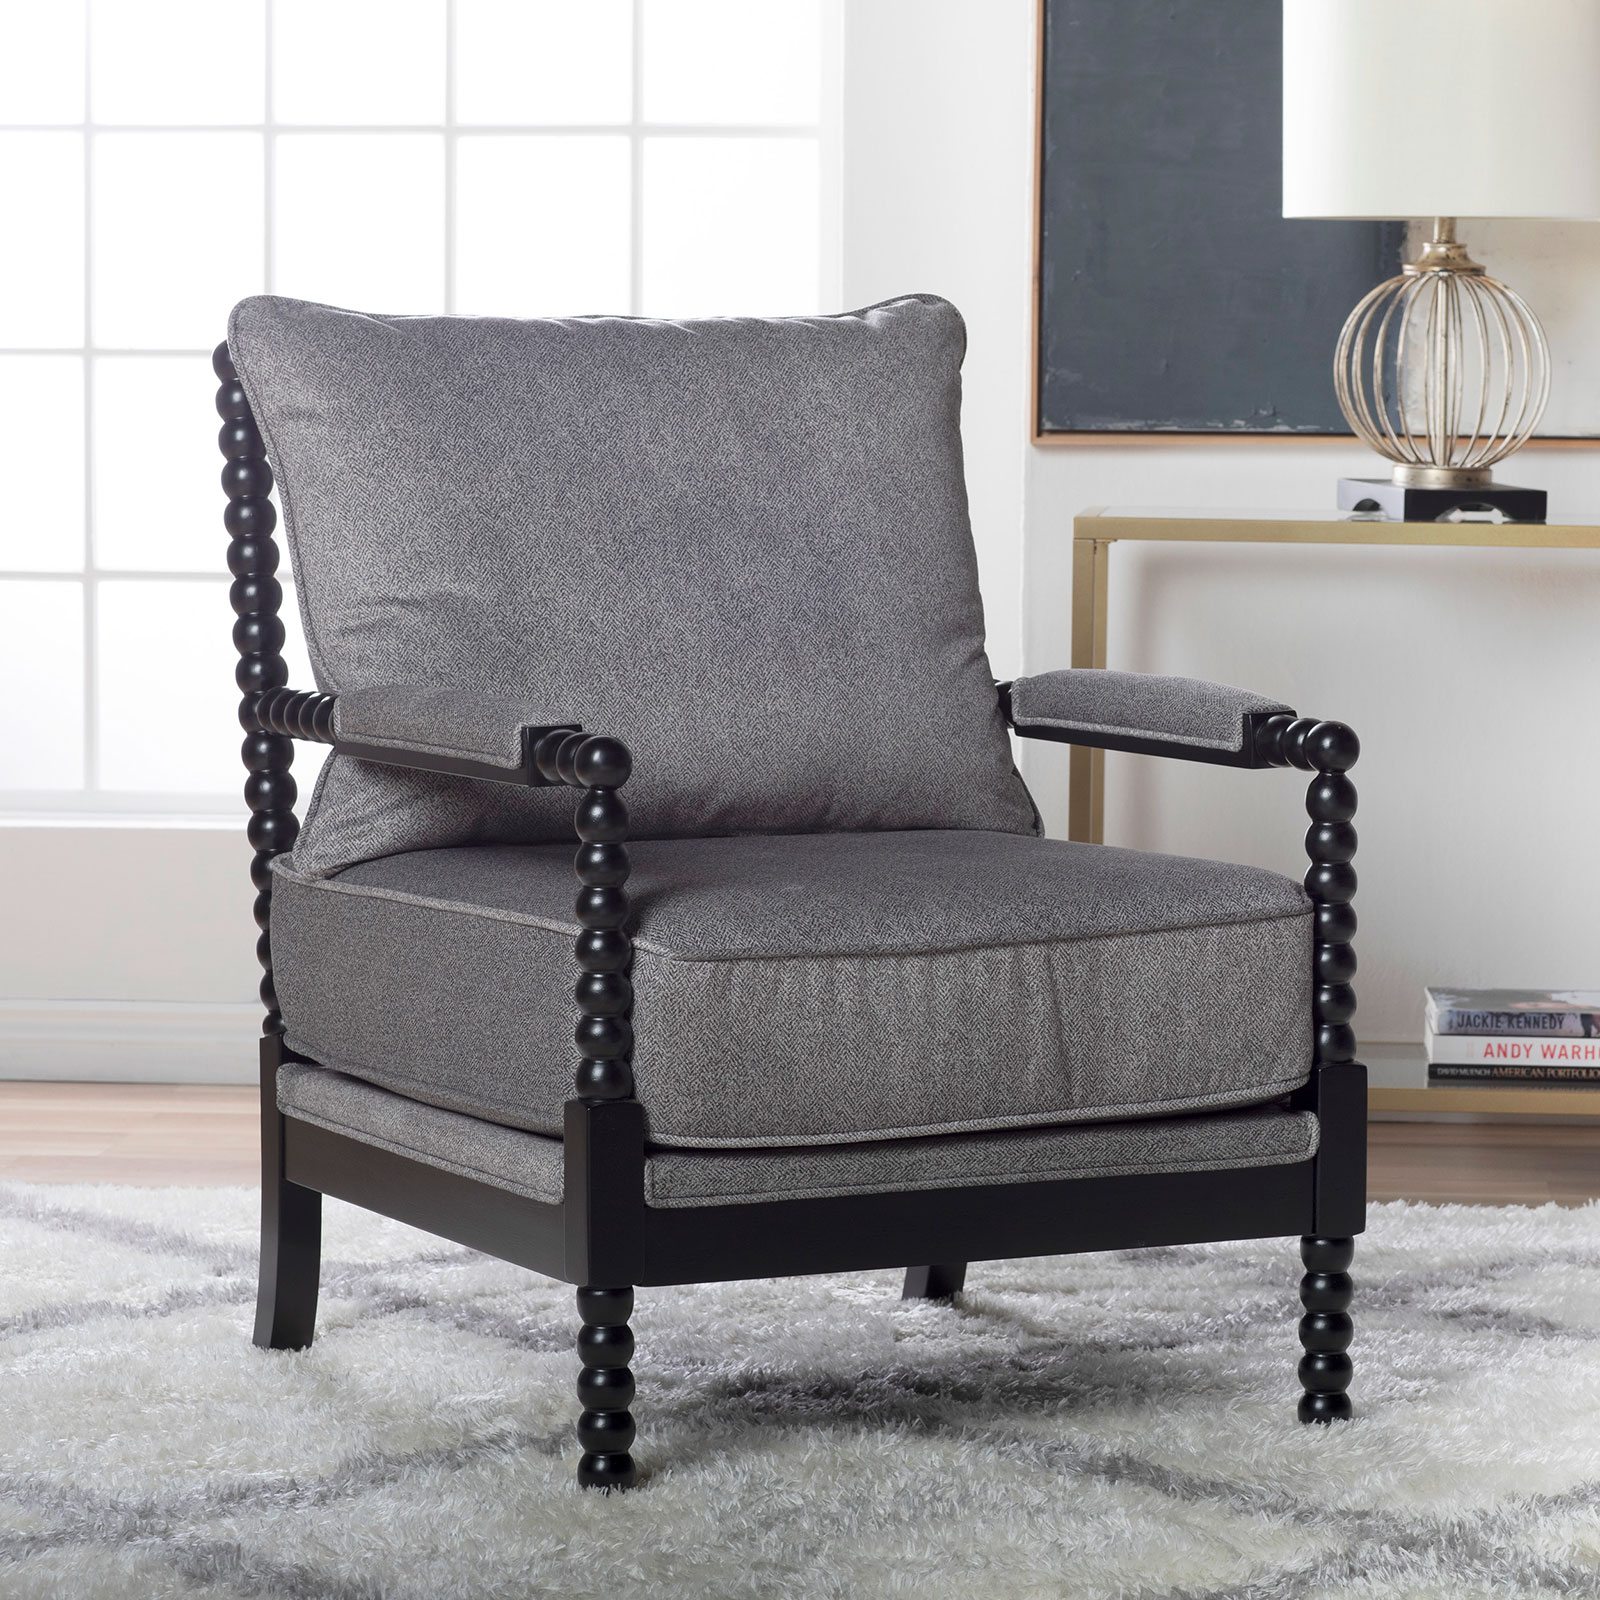 72041-Colonnade-Spindle-Chair-RS1b